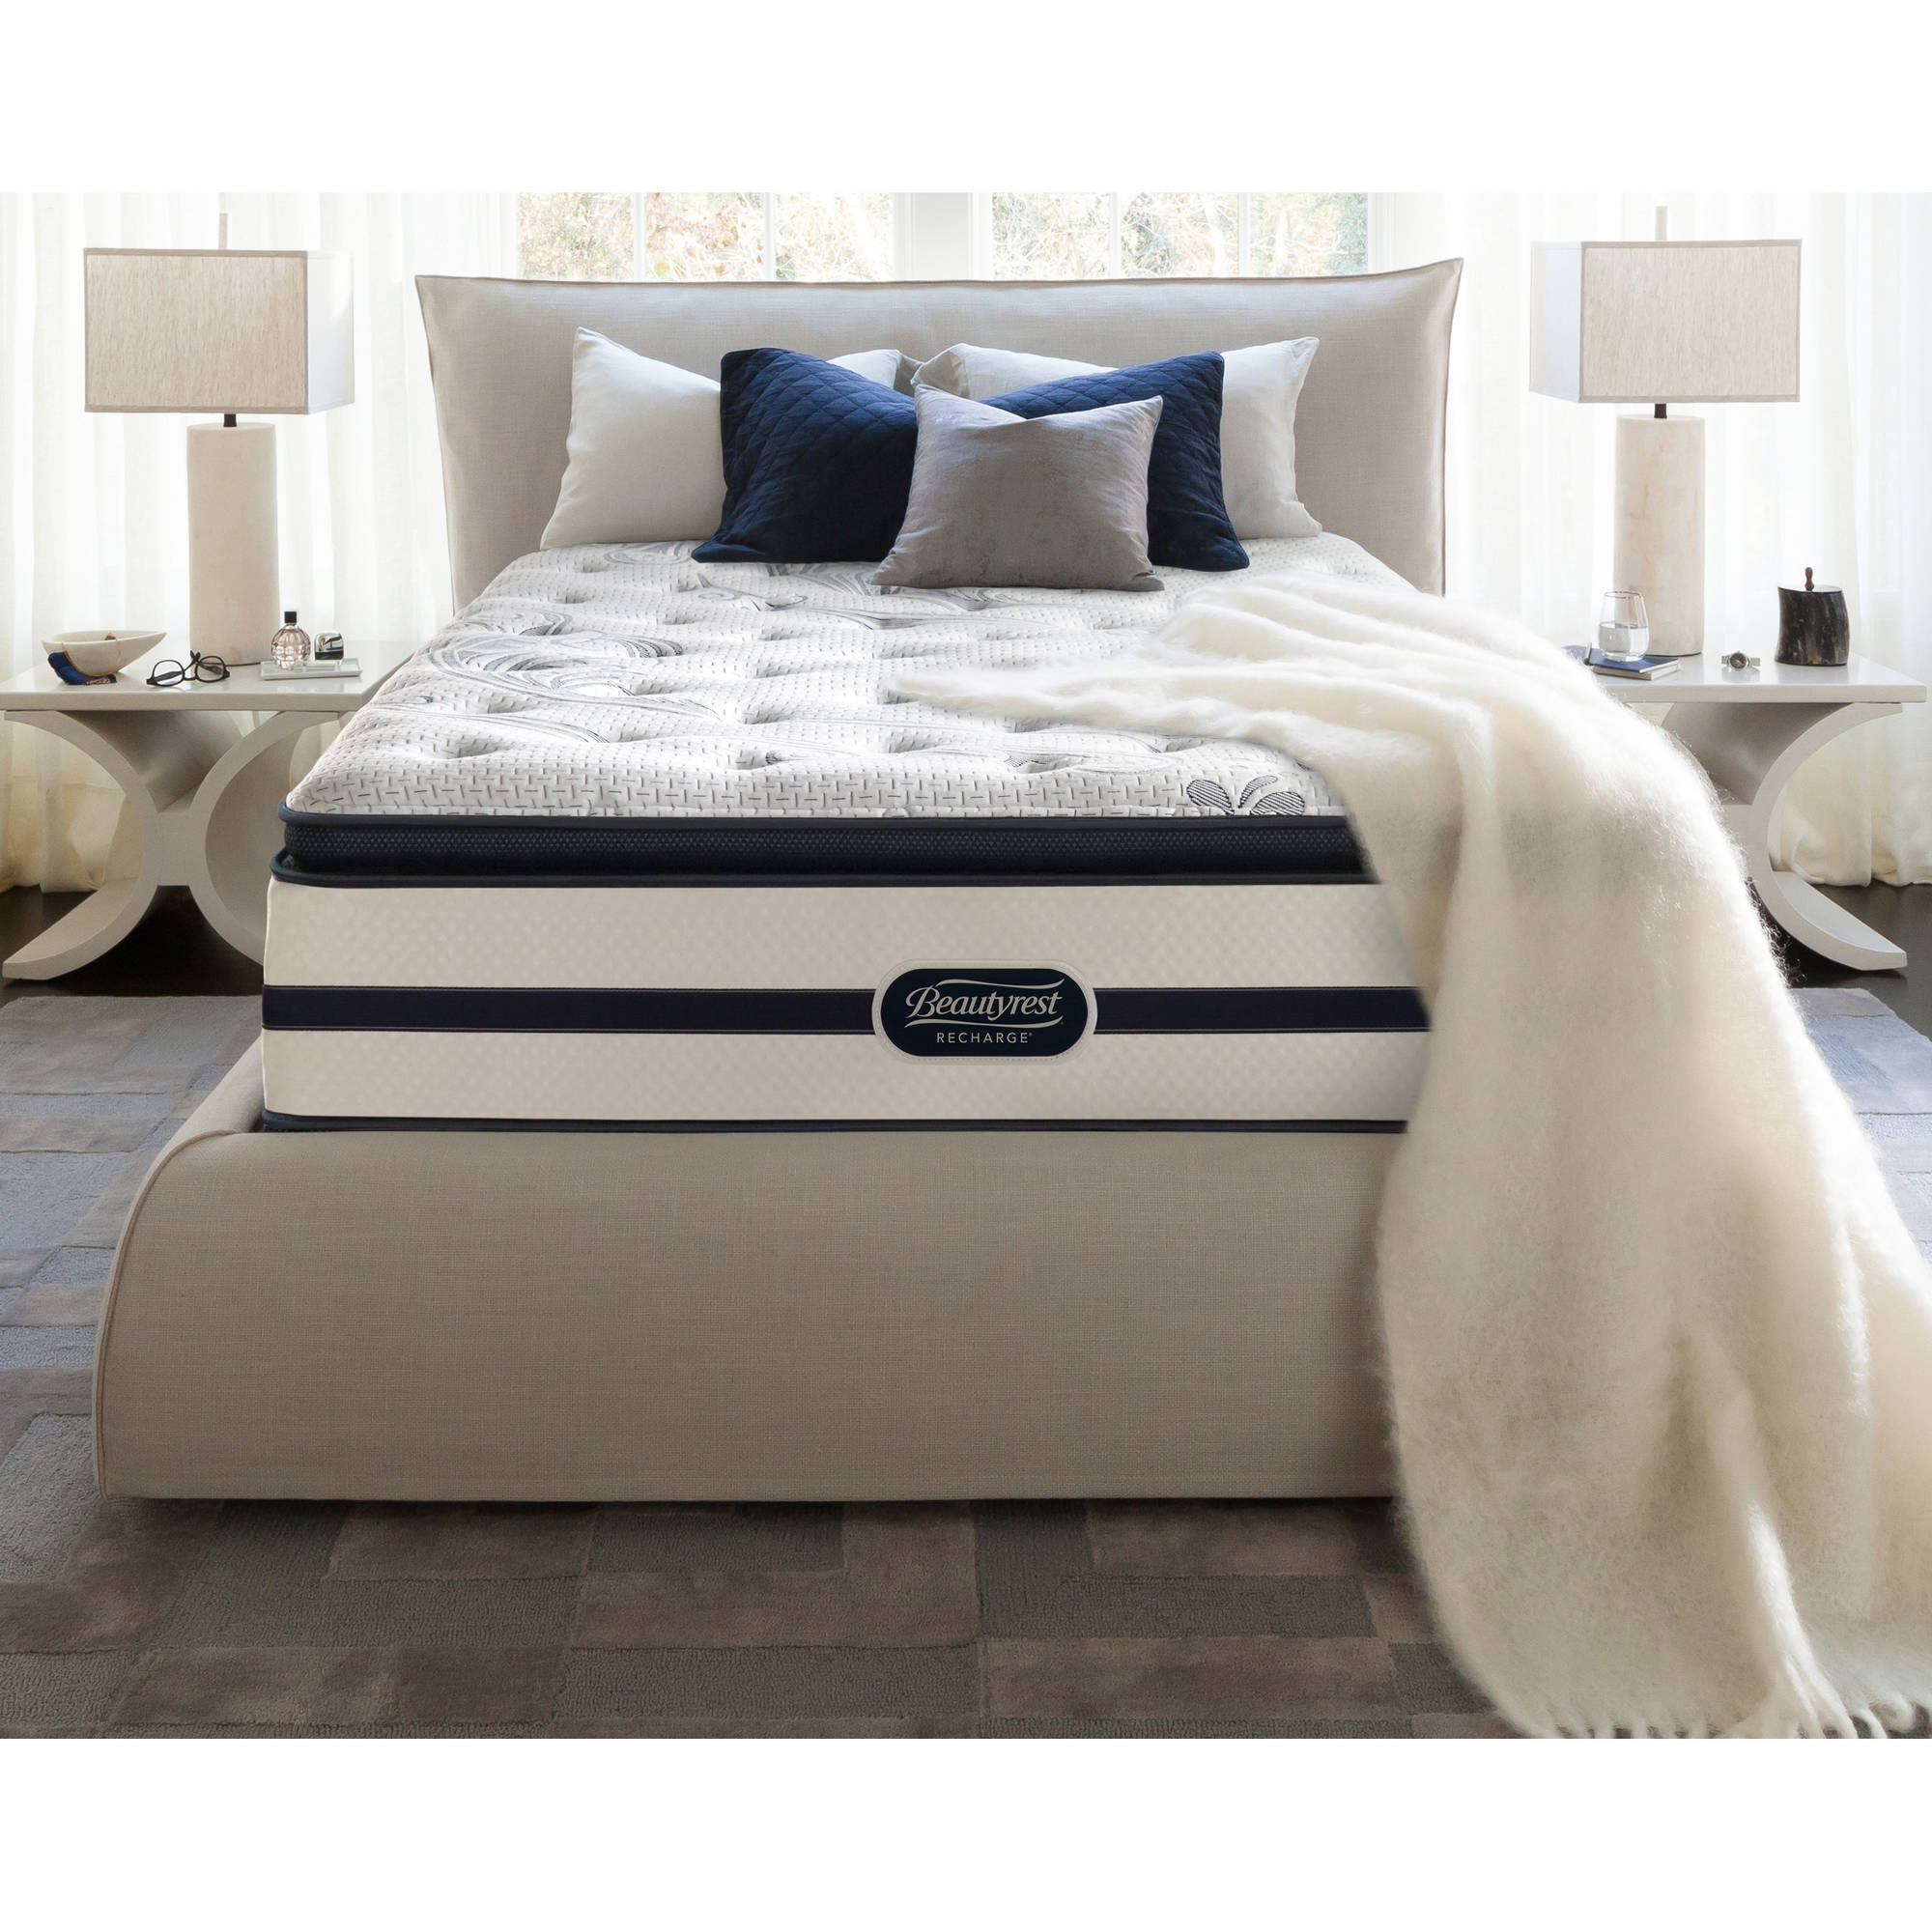 super beautiful luxury legend of pillow post serta goodbed related top plush reviews sea simmons beautyrest mattress imperial